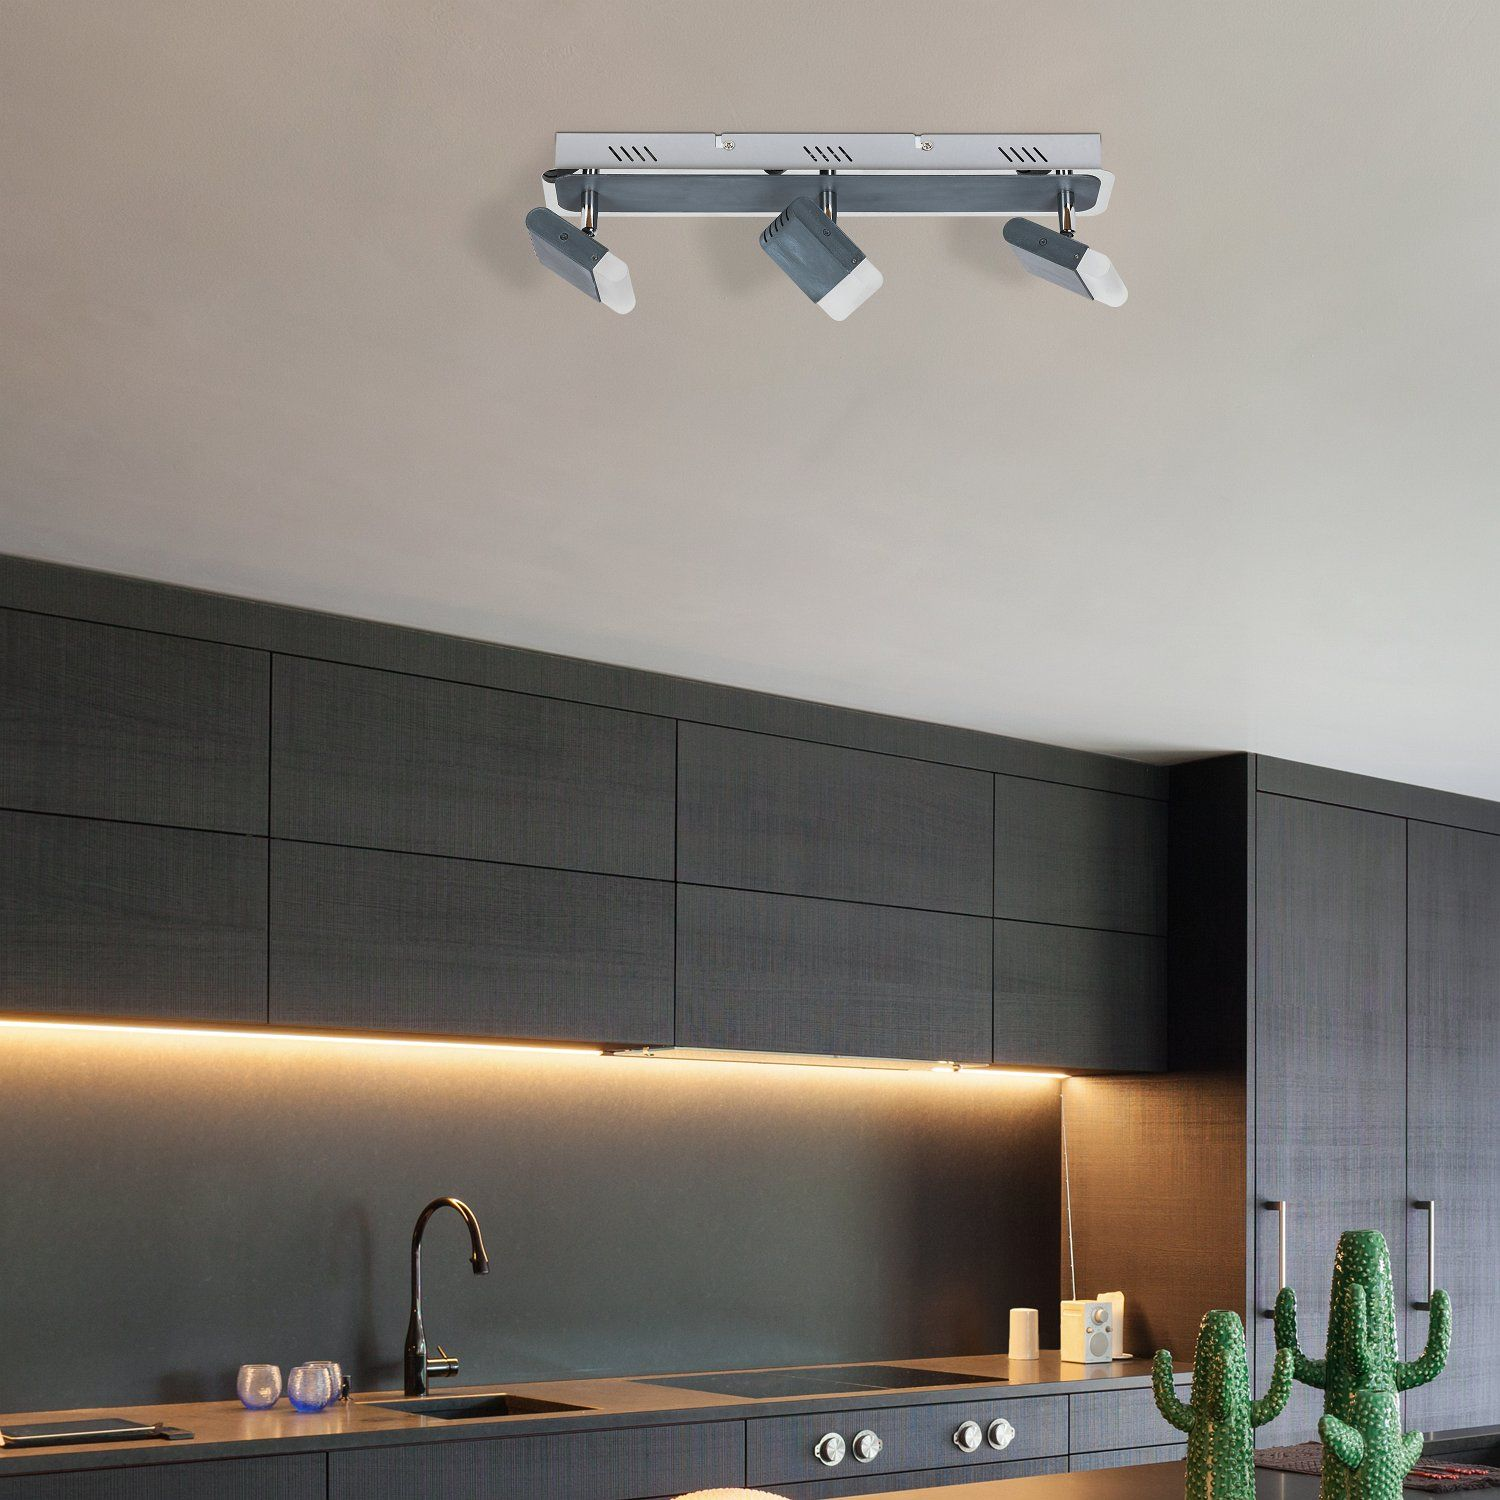 Spotlights Can Be Used In Any Room May Be A Perfect Choice For A Hall Living Room Or Bathroom And May Be Placed On The Walls Or The Ceiling Spotlights Can Be With